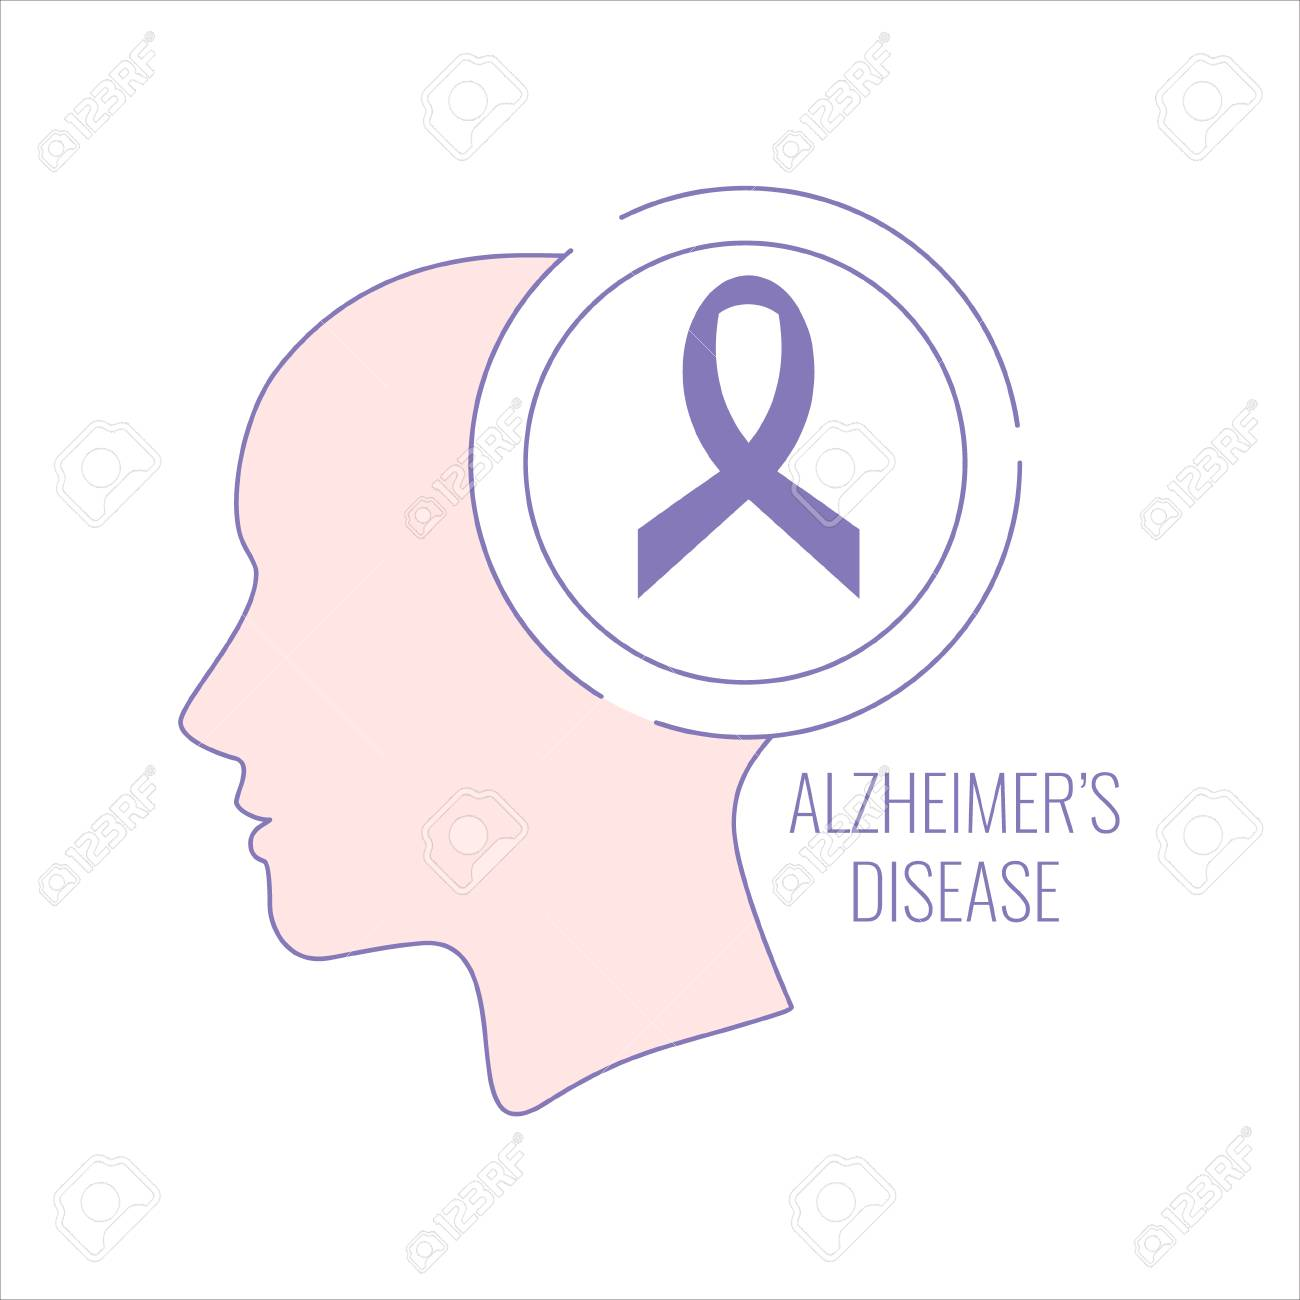 Alzheimer\'s Disease Poster With Woman\'s Silhouette And Purple ...